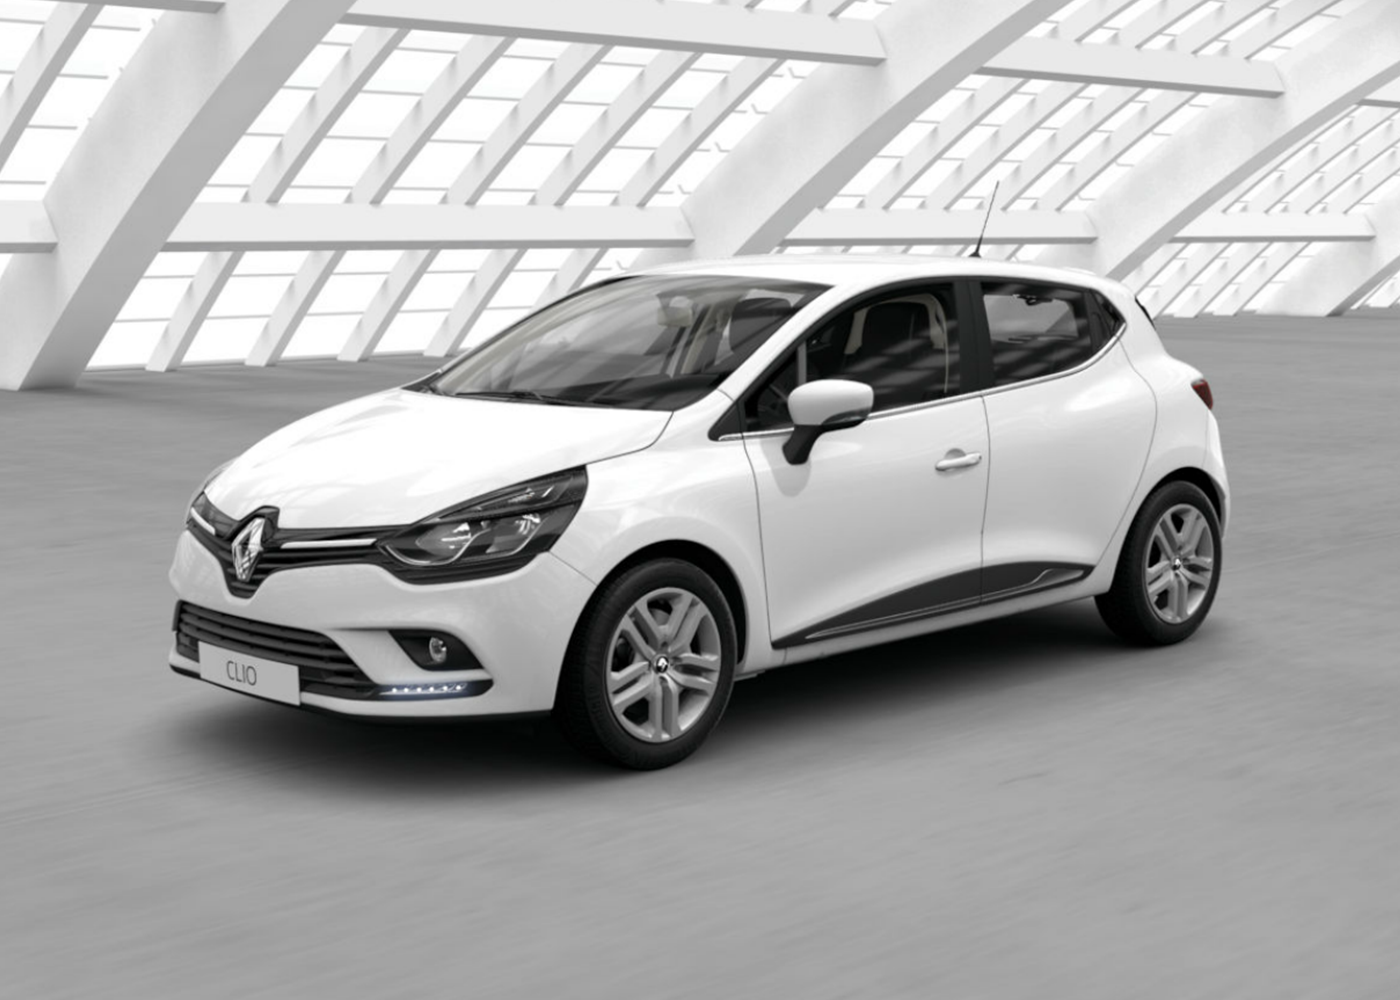 renault clio tce 12v 90cv gpl start stop 5 porte energy zen bianco ghiaccio km0 a soli 14250 su. Black Bedroom Furniture Sets. Home Design Ideas